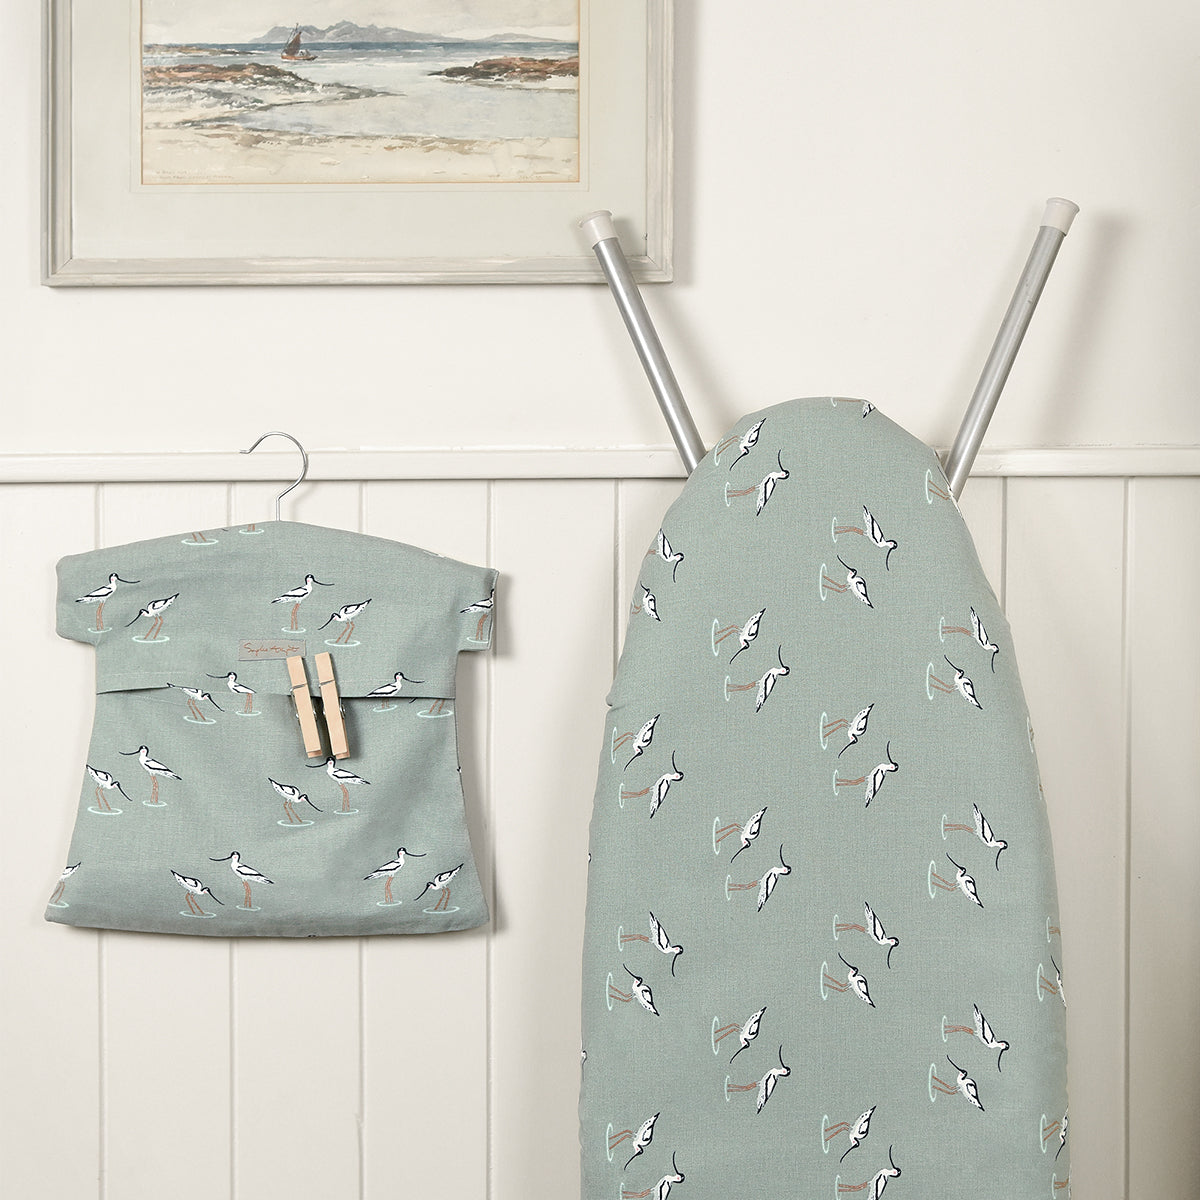 Sophie Allport Peg Bag in her Coastal Birds design with wooden hanger